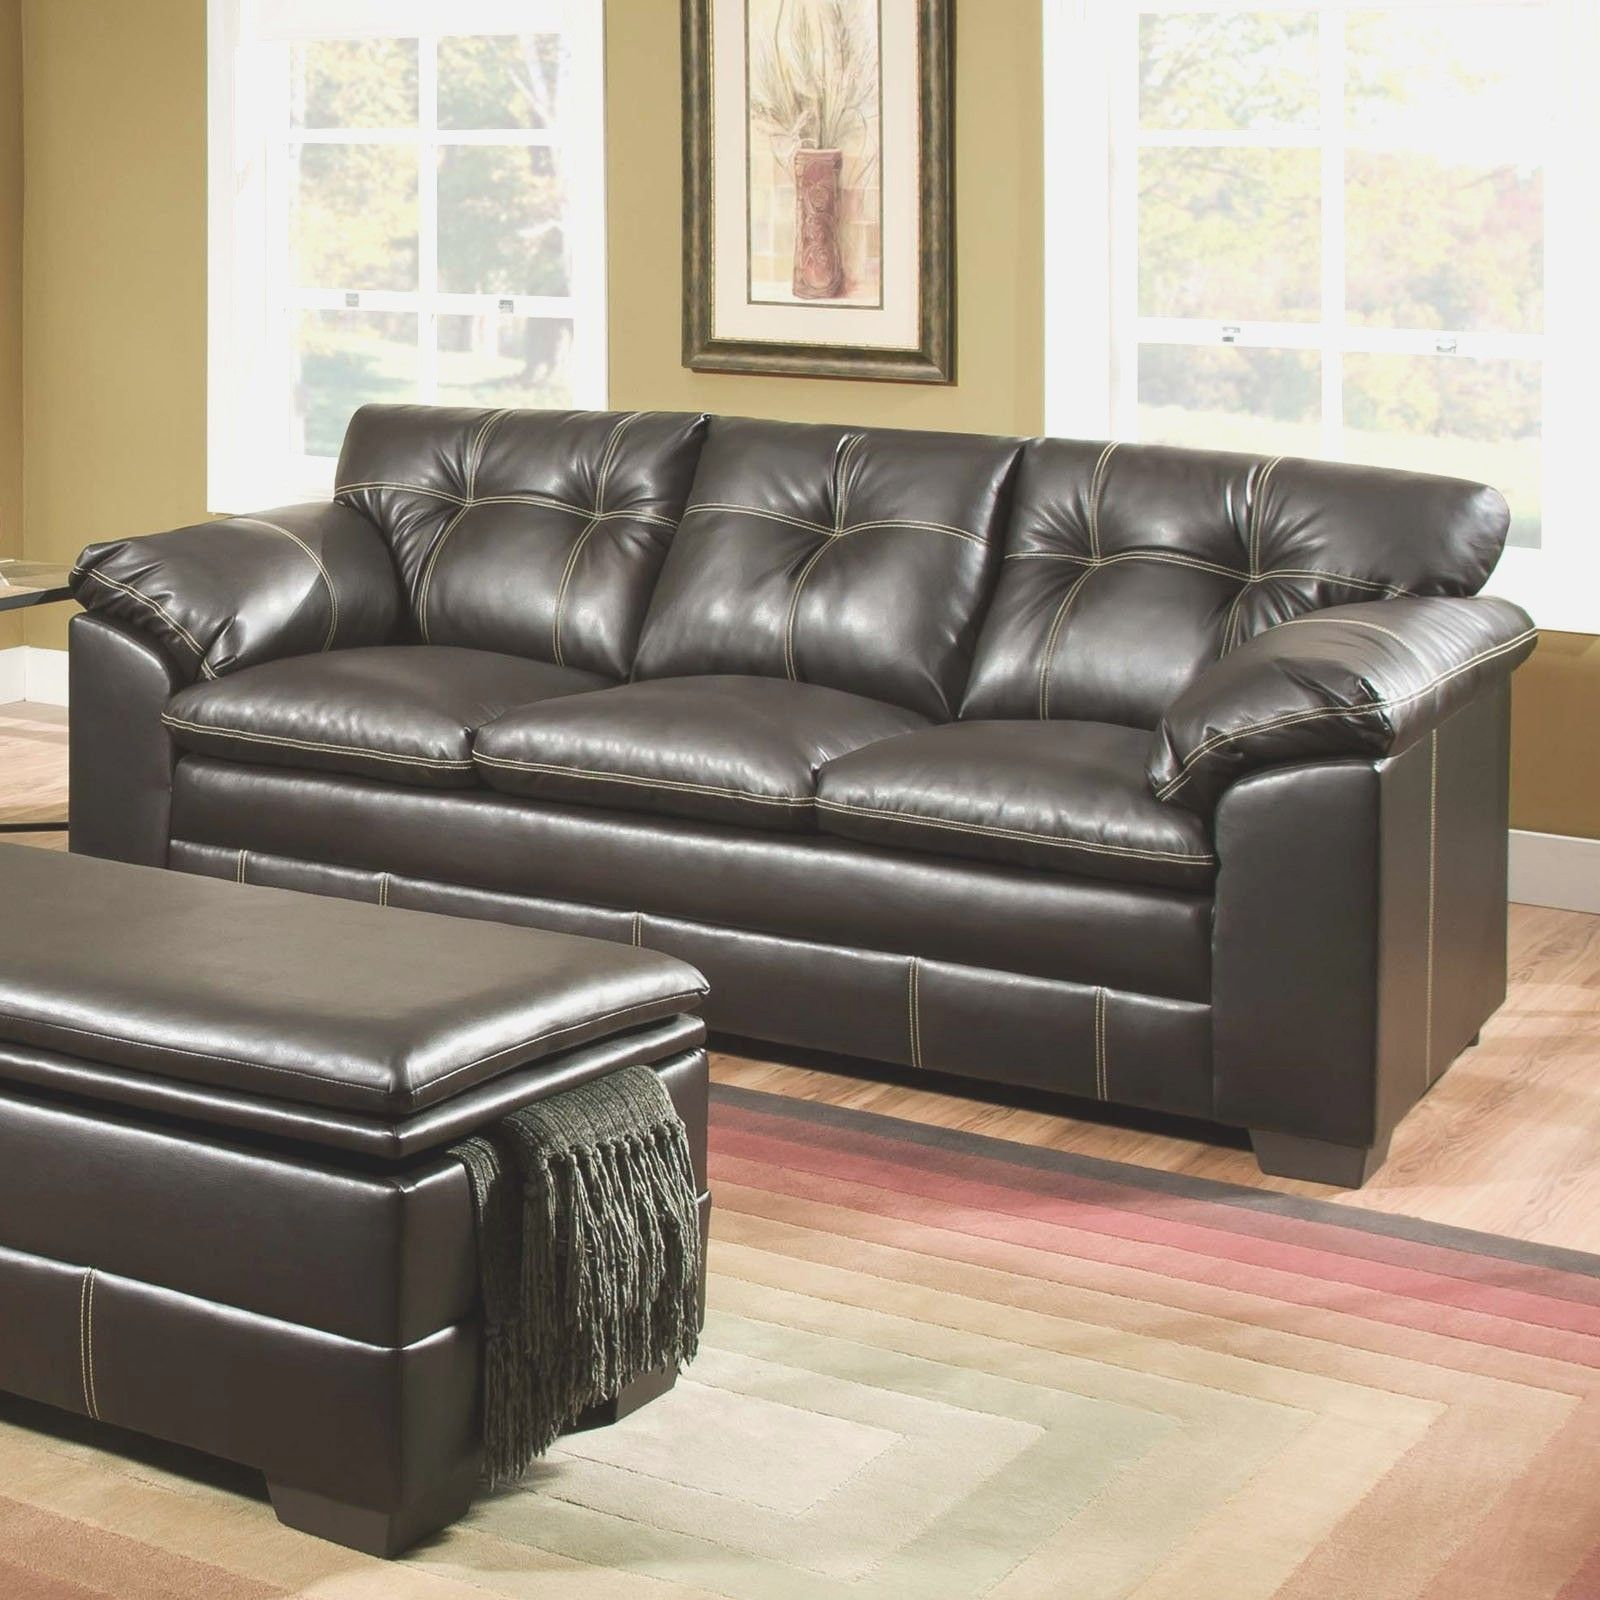 Big Lots sofa Sleeper - big lots furniture sleeper sofa, big ...